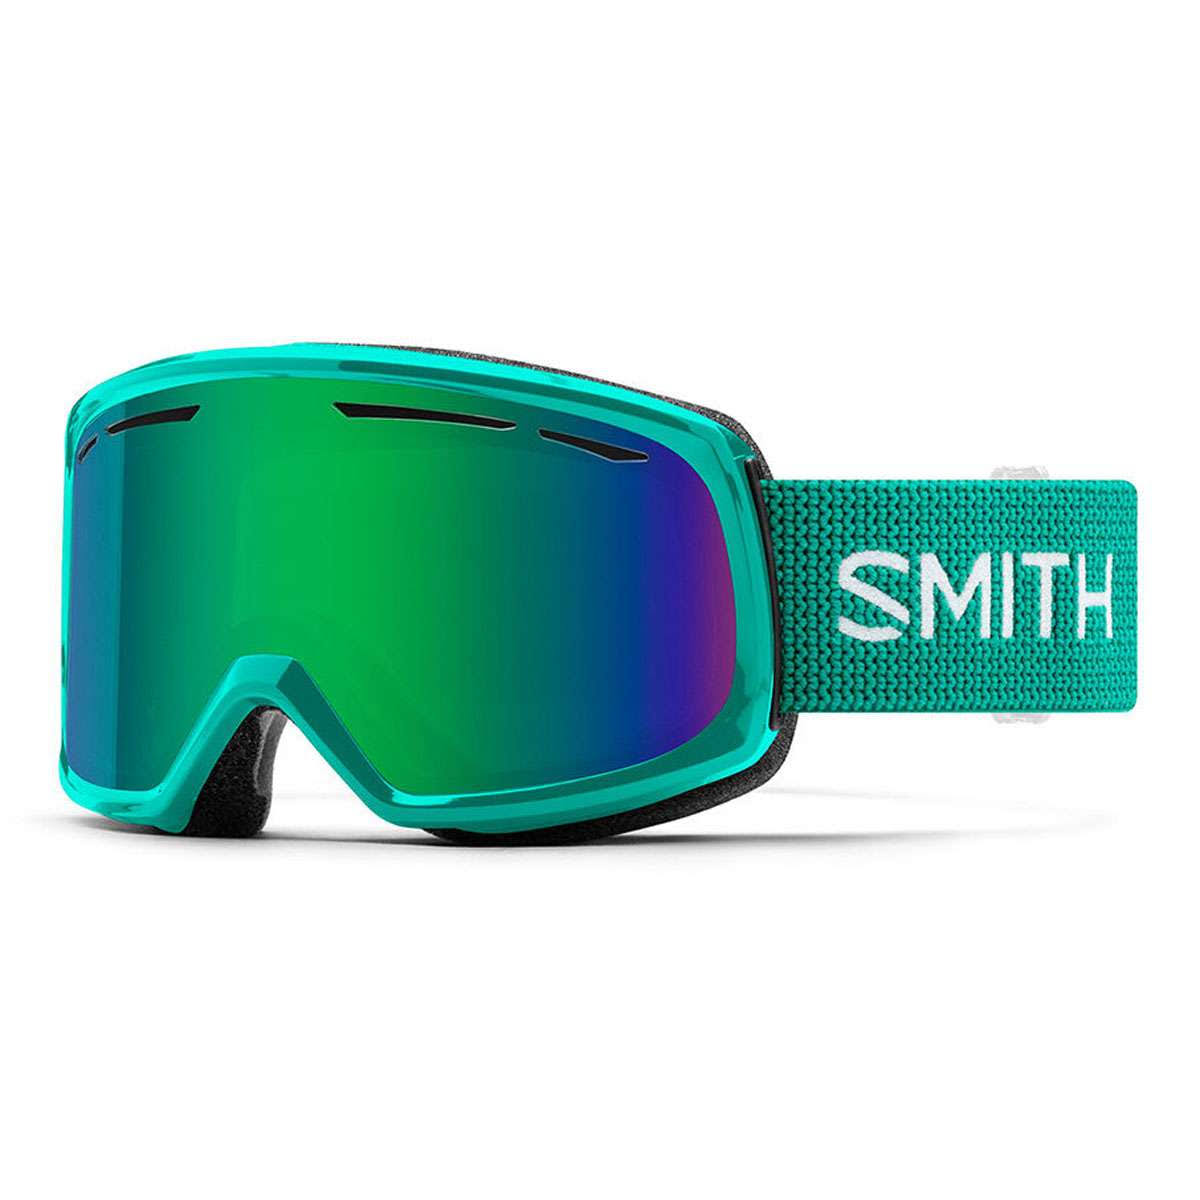 Smith Drift Womens Snow Goggles - Jade Frame, Green